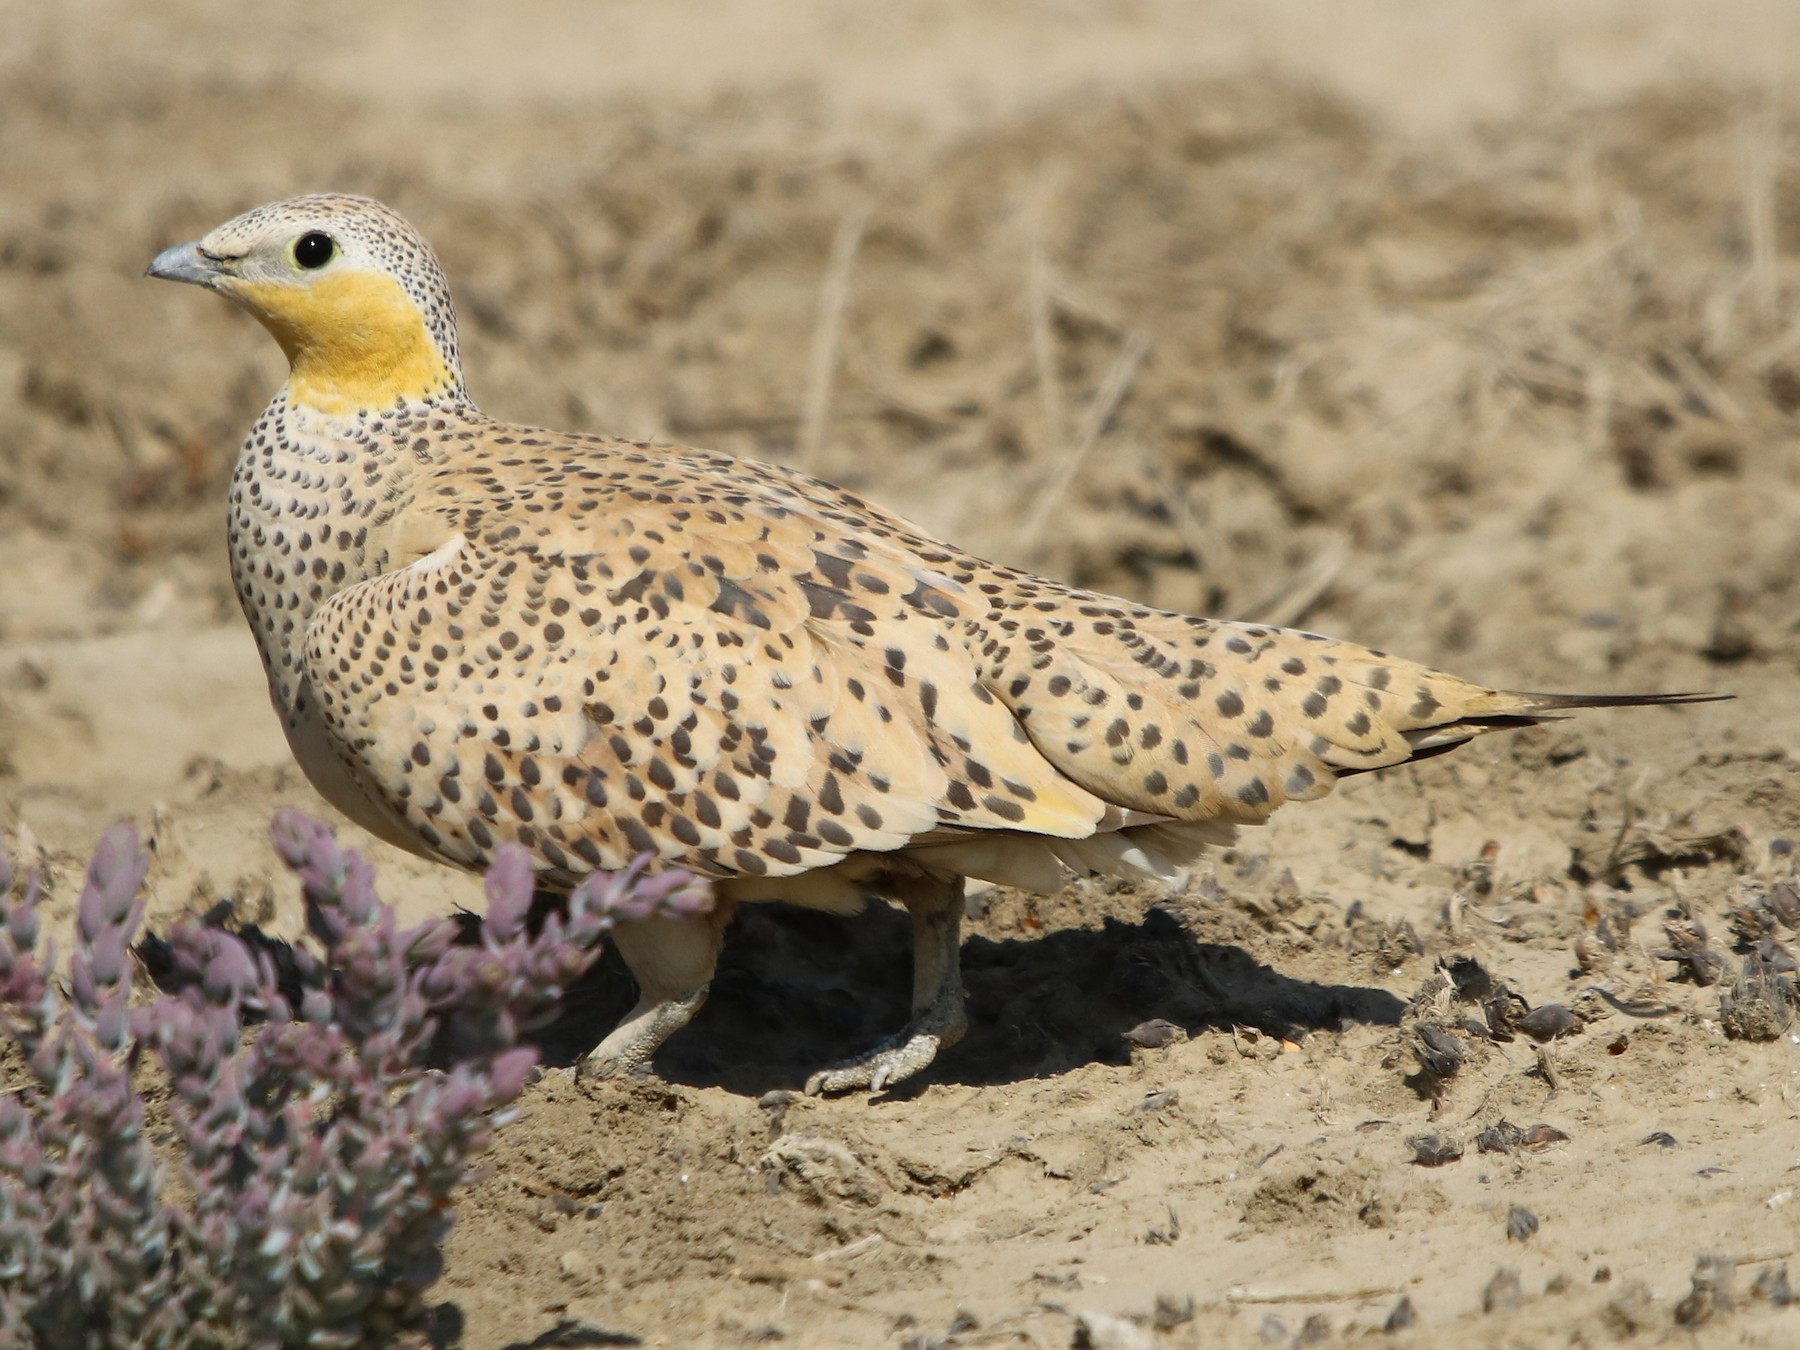 Spotted Sandgrouse - Bhaarat Vyas